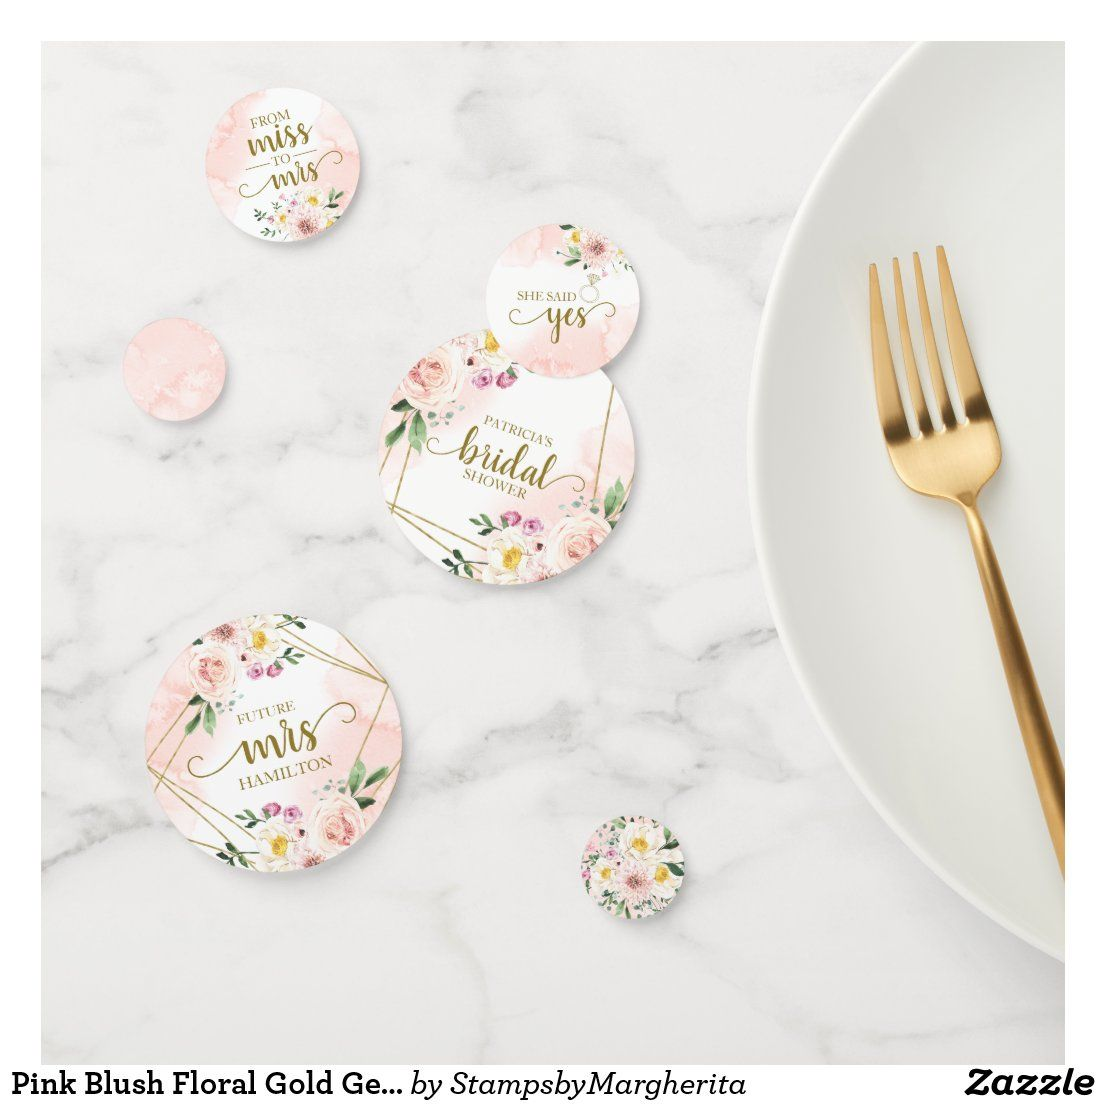 Pink Blush Floral Gold Geometric Bridal Shower Con